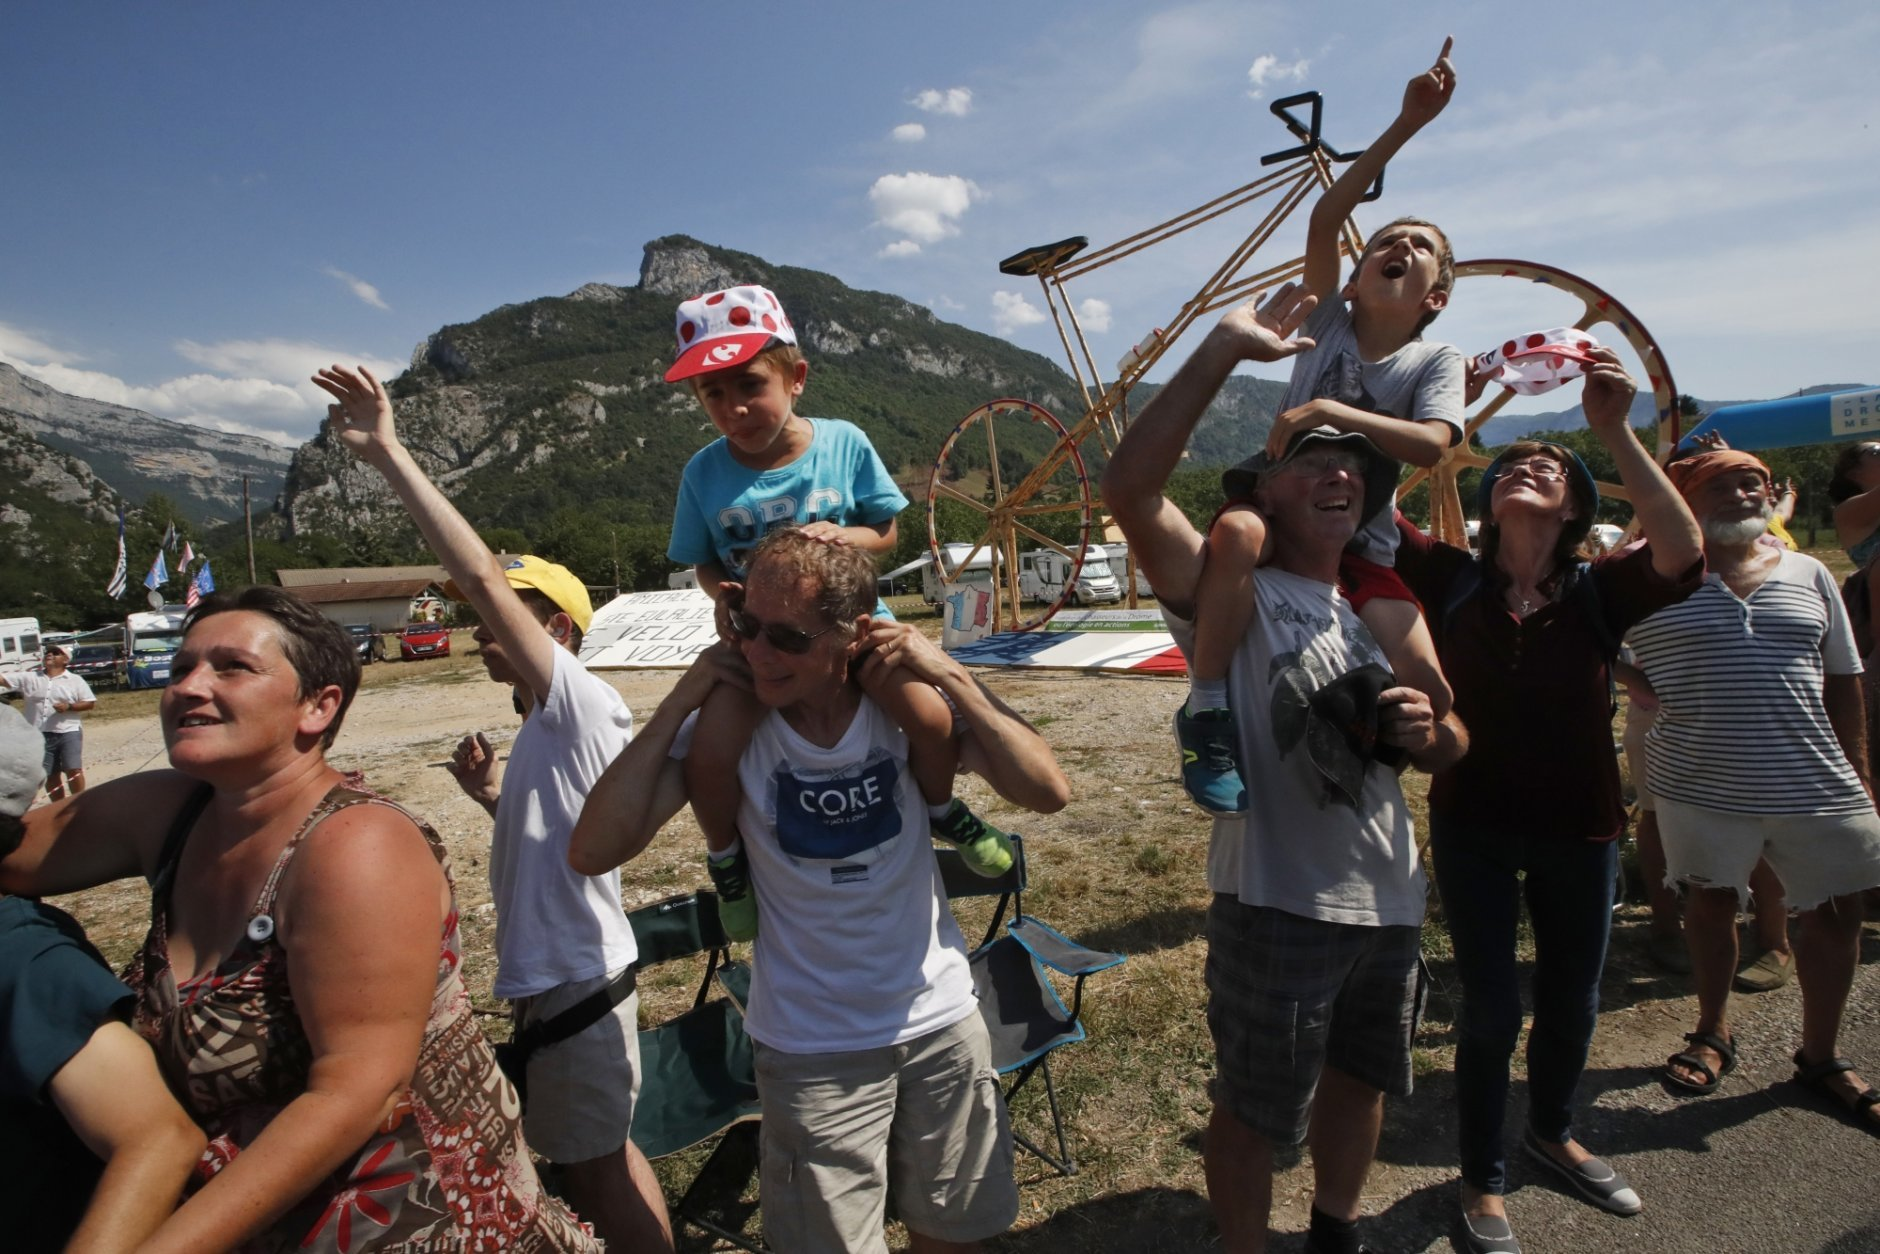 Fans lining the road look up at helicopters passing overhead during the thirteenth stage of the Tour de France cycling race over 169.5 kilometers (105.3 miles) with start in Bourg d'Oisans and finish in Valence, France, Friday July 20, 2018. Tour organizers estimate that 10 to 12 million spectators line the route each year. (AP Photo/Christophe Ena )